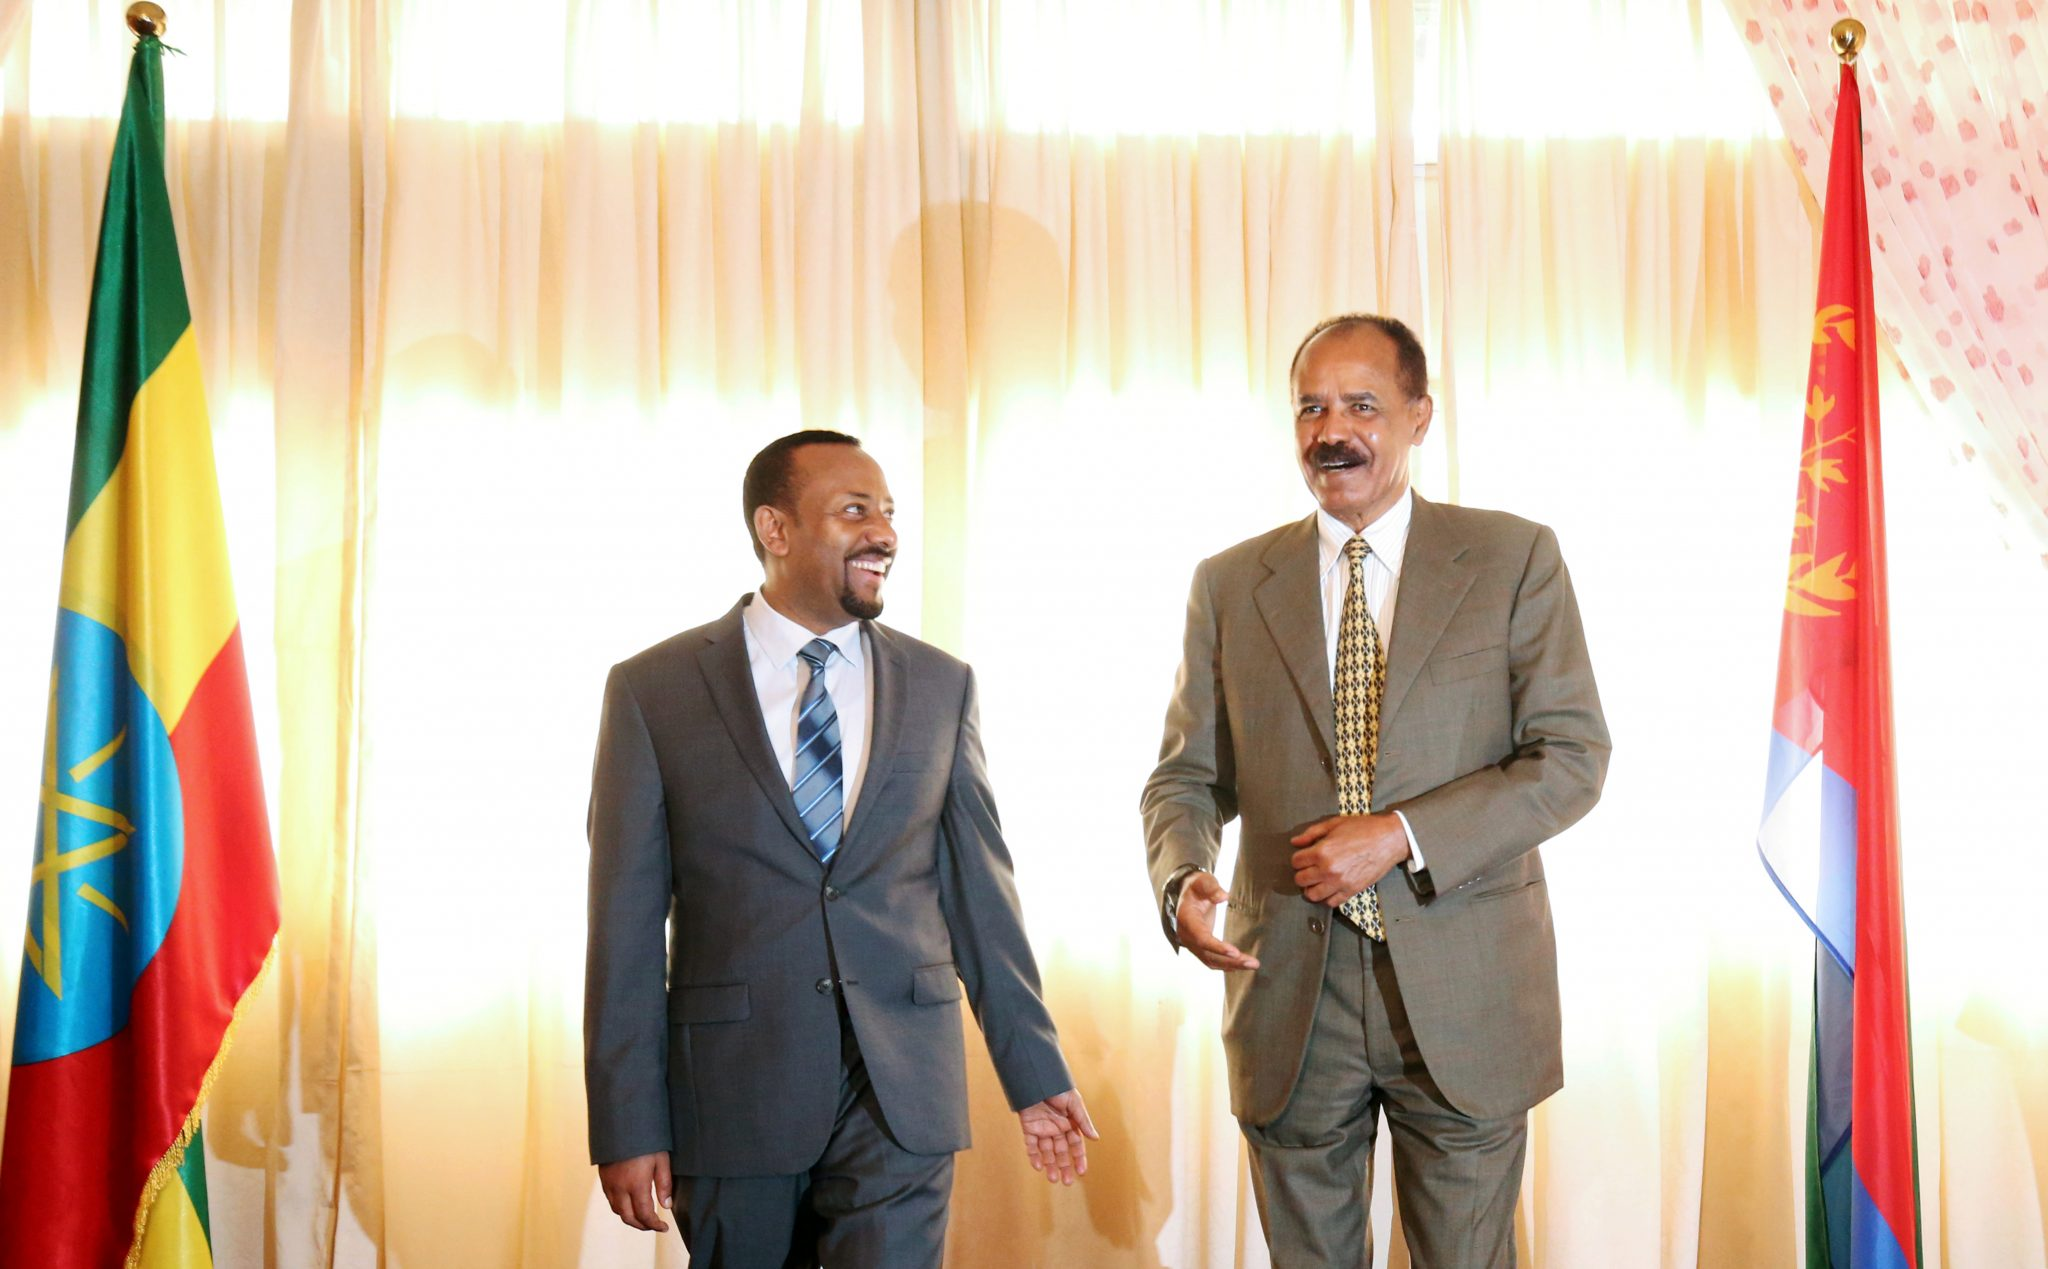 Eritrea's President, Isaias Afwerki talks to Ethiopia's Prime Minister, Abiy Ahmed during the Inauguration ceremony marking the reopening of the Eritrean Embassy in Addis Ababa, Ethiopia July 16, 2018. REUTERS/Tiksa Negeri - RC13F9FB50E0